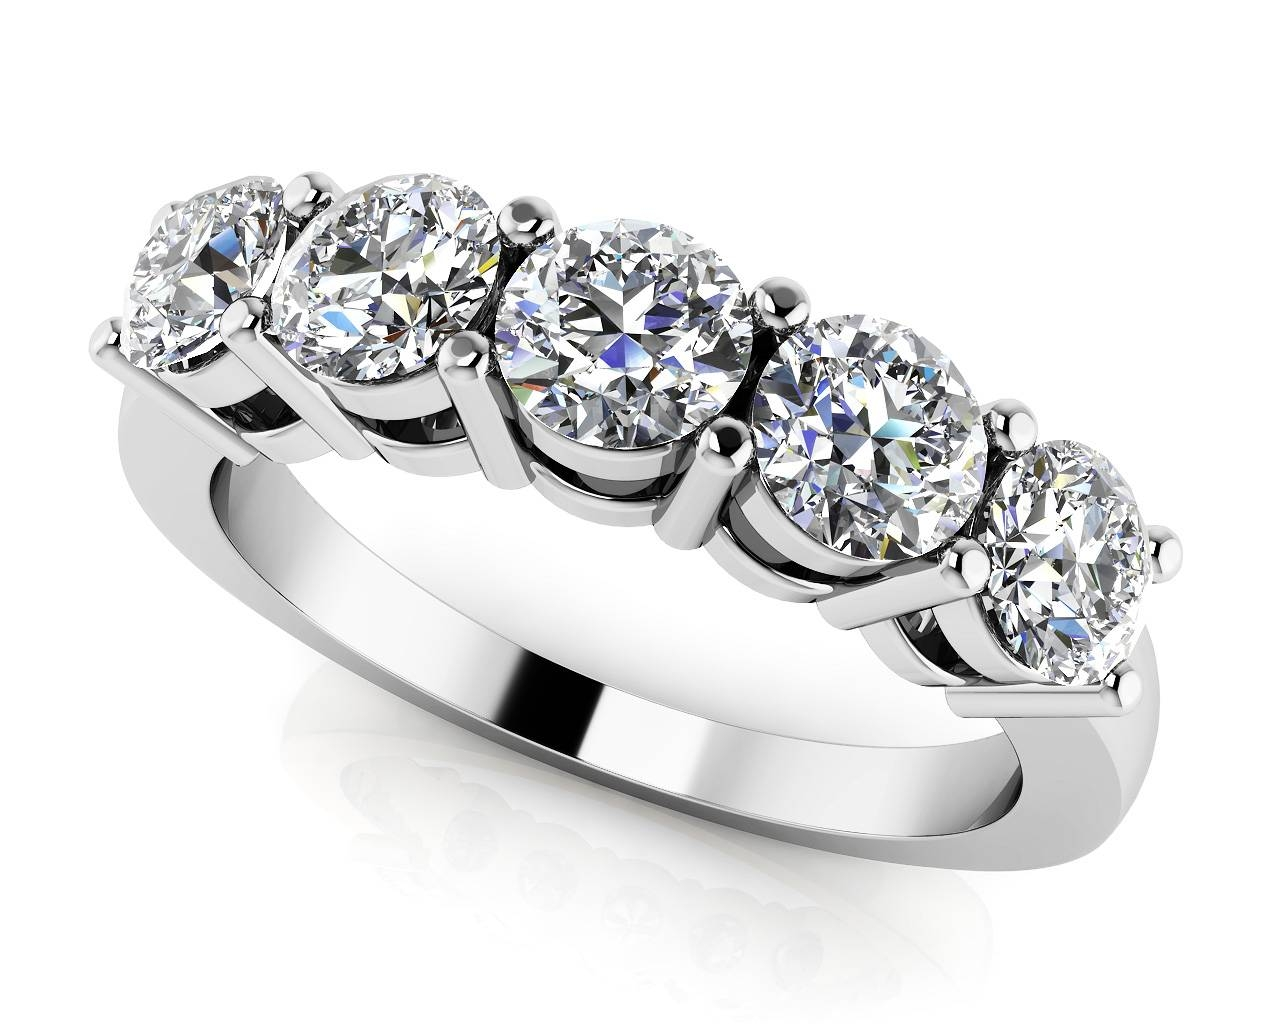 Design Your Own Diamond Anniversary Ring & Eternity Ring With Regard To 2017 Wedding And Anniversary Rings (View 3 of 25)